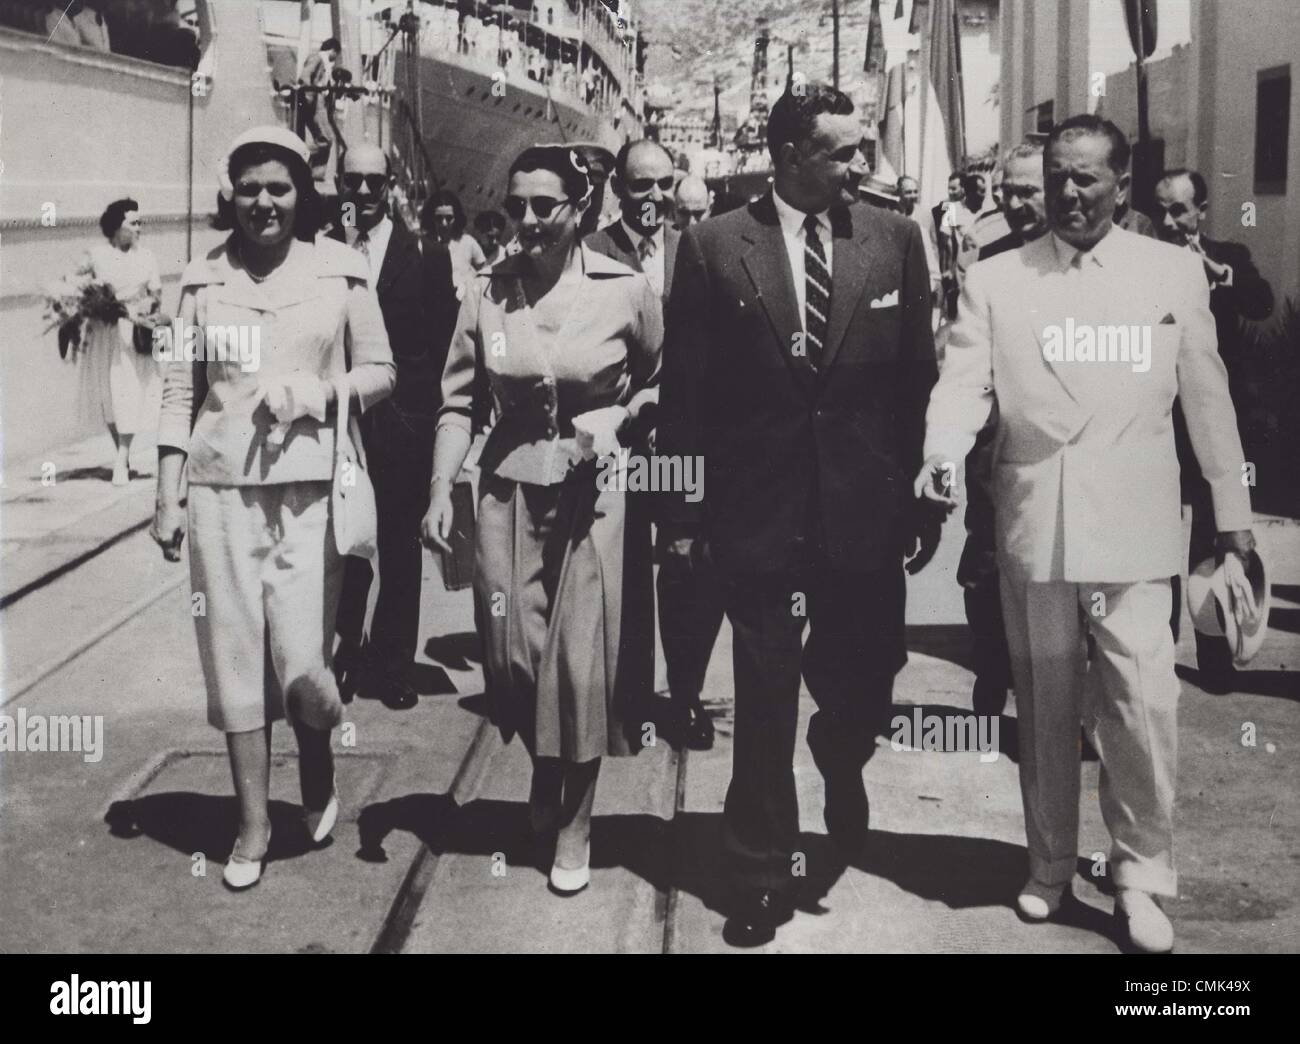 GAMAL ABDEL NASSER.Gamal Abdel Nasser Hussein was the second President of Egypt from 1956 until his death.(Credit - Stock Image